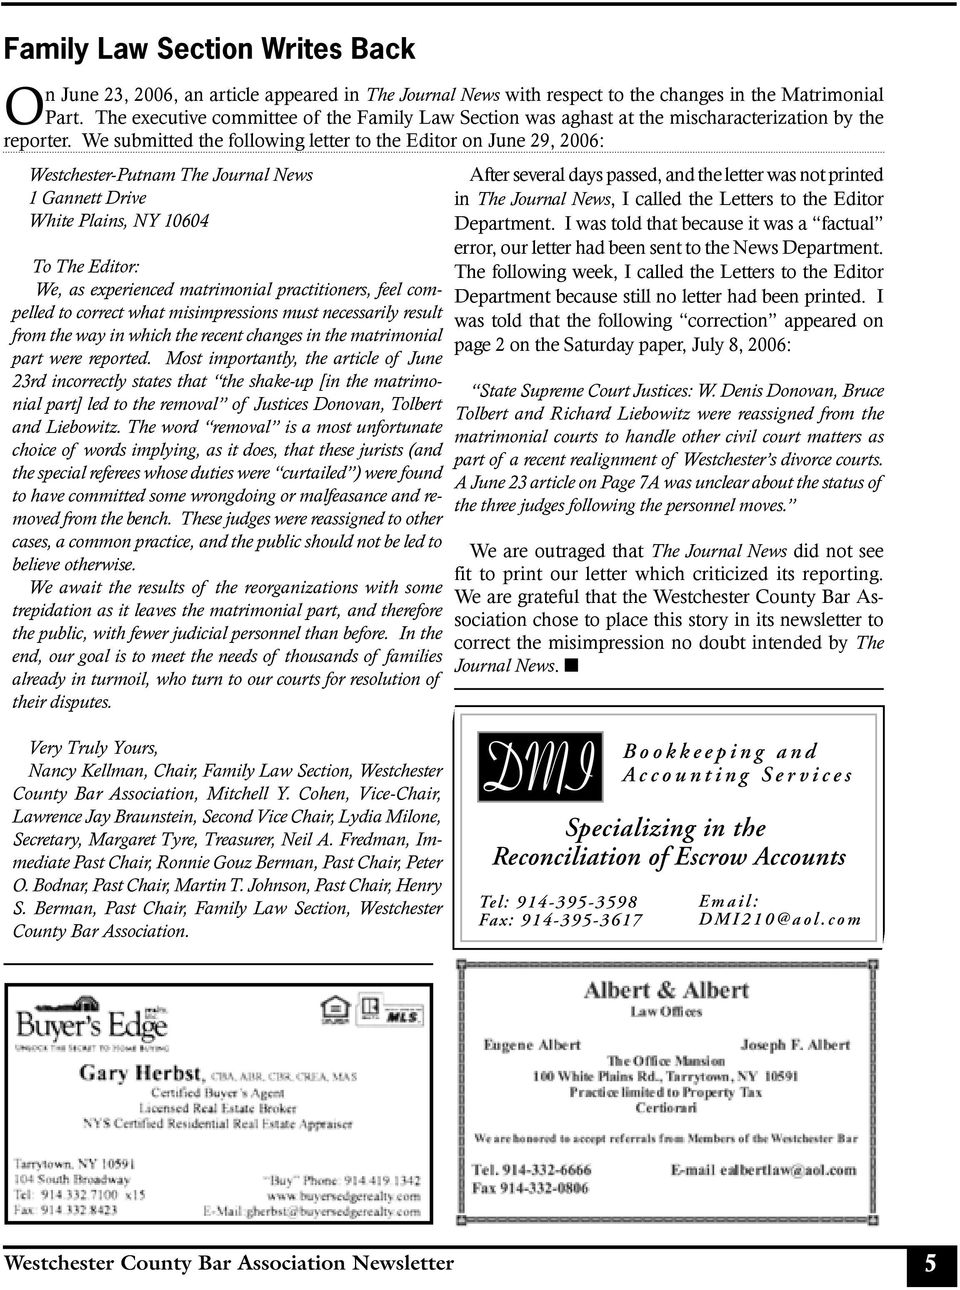 westchester county bar association newsletter Mother nature